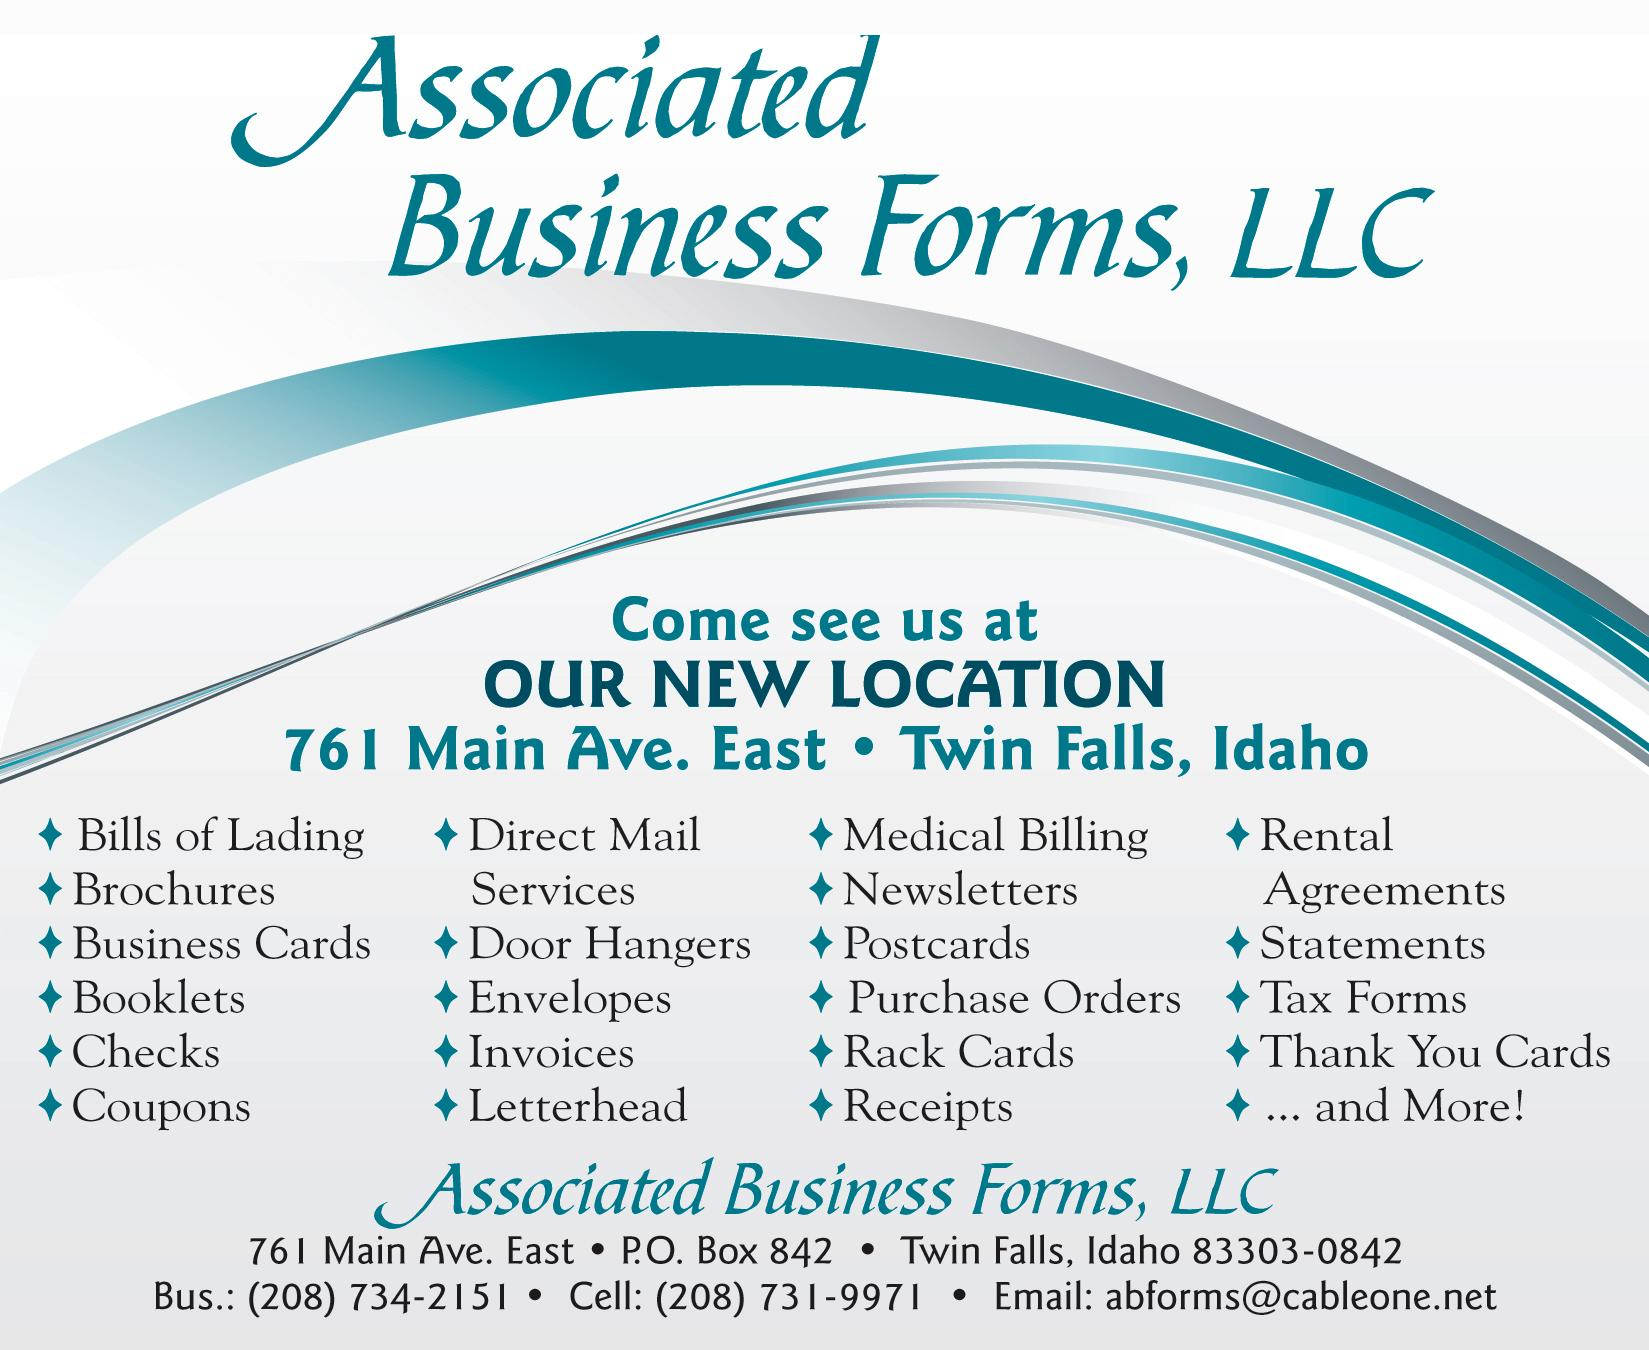 Associated Business Forms, LLC image 0